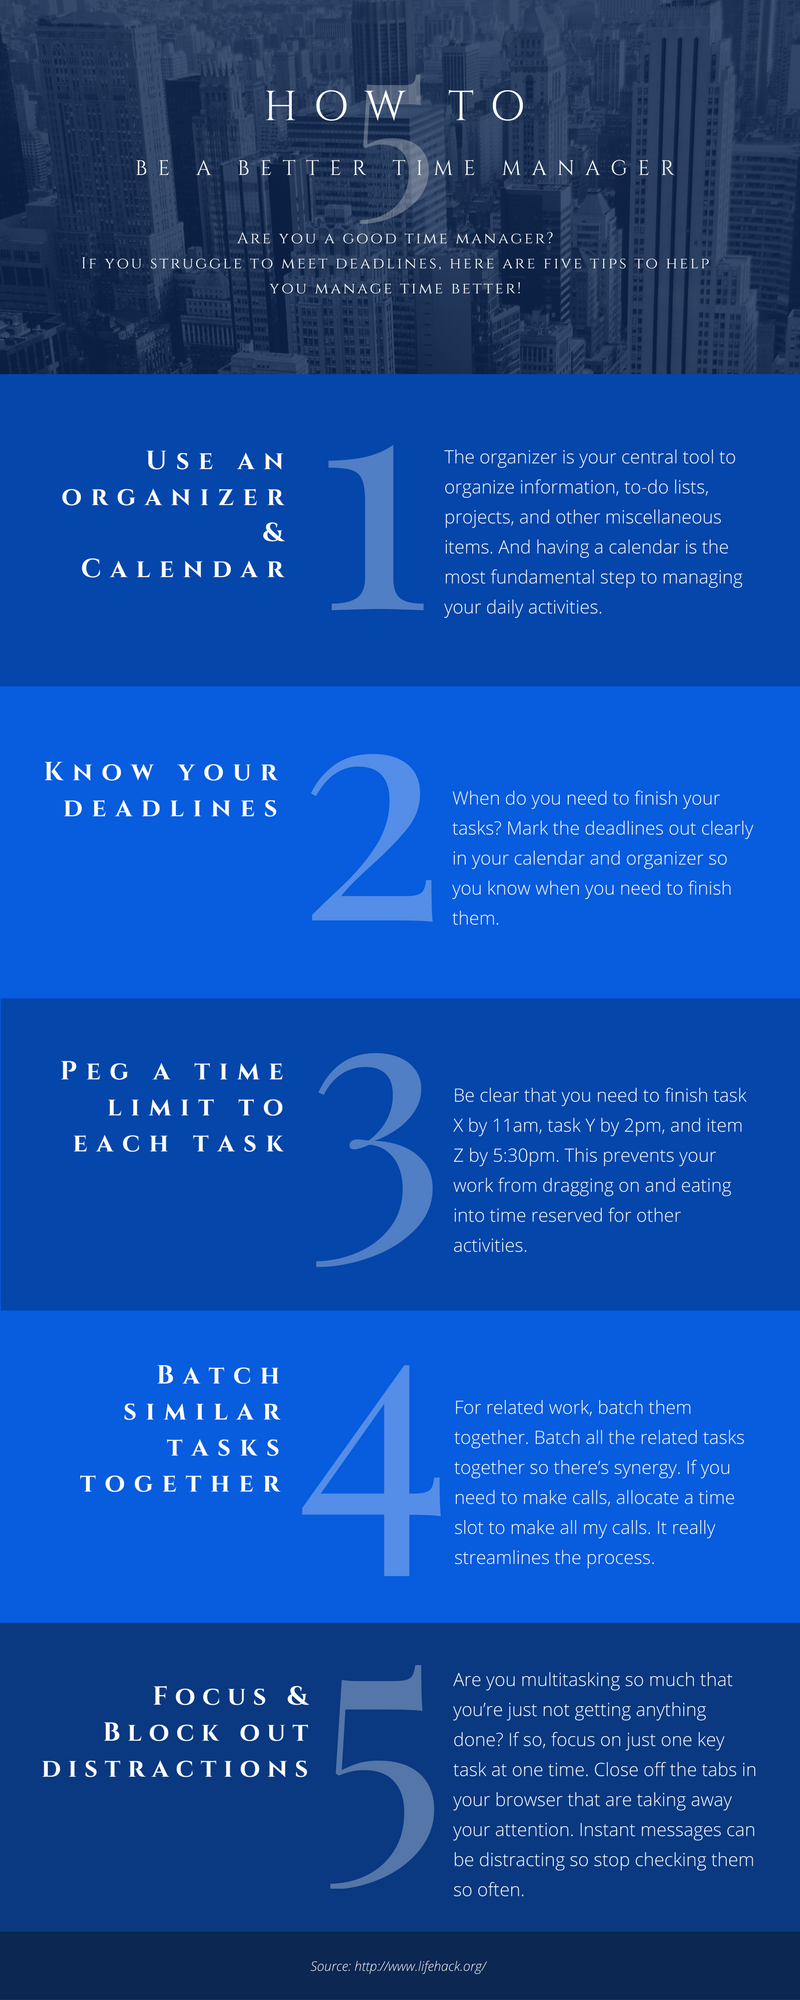 Here are five ways on how to be a better time manager!